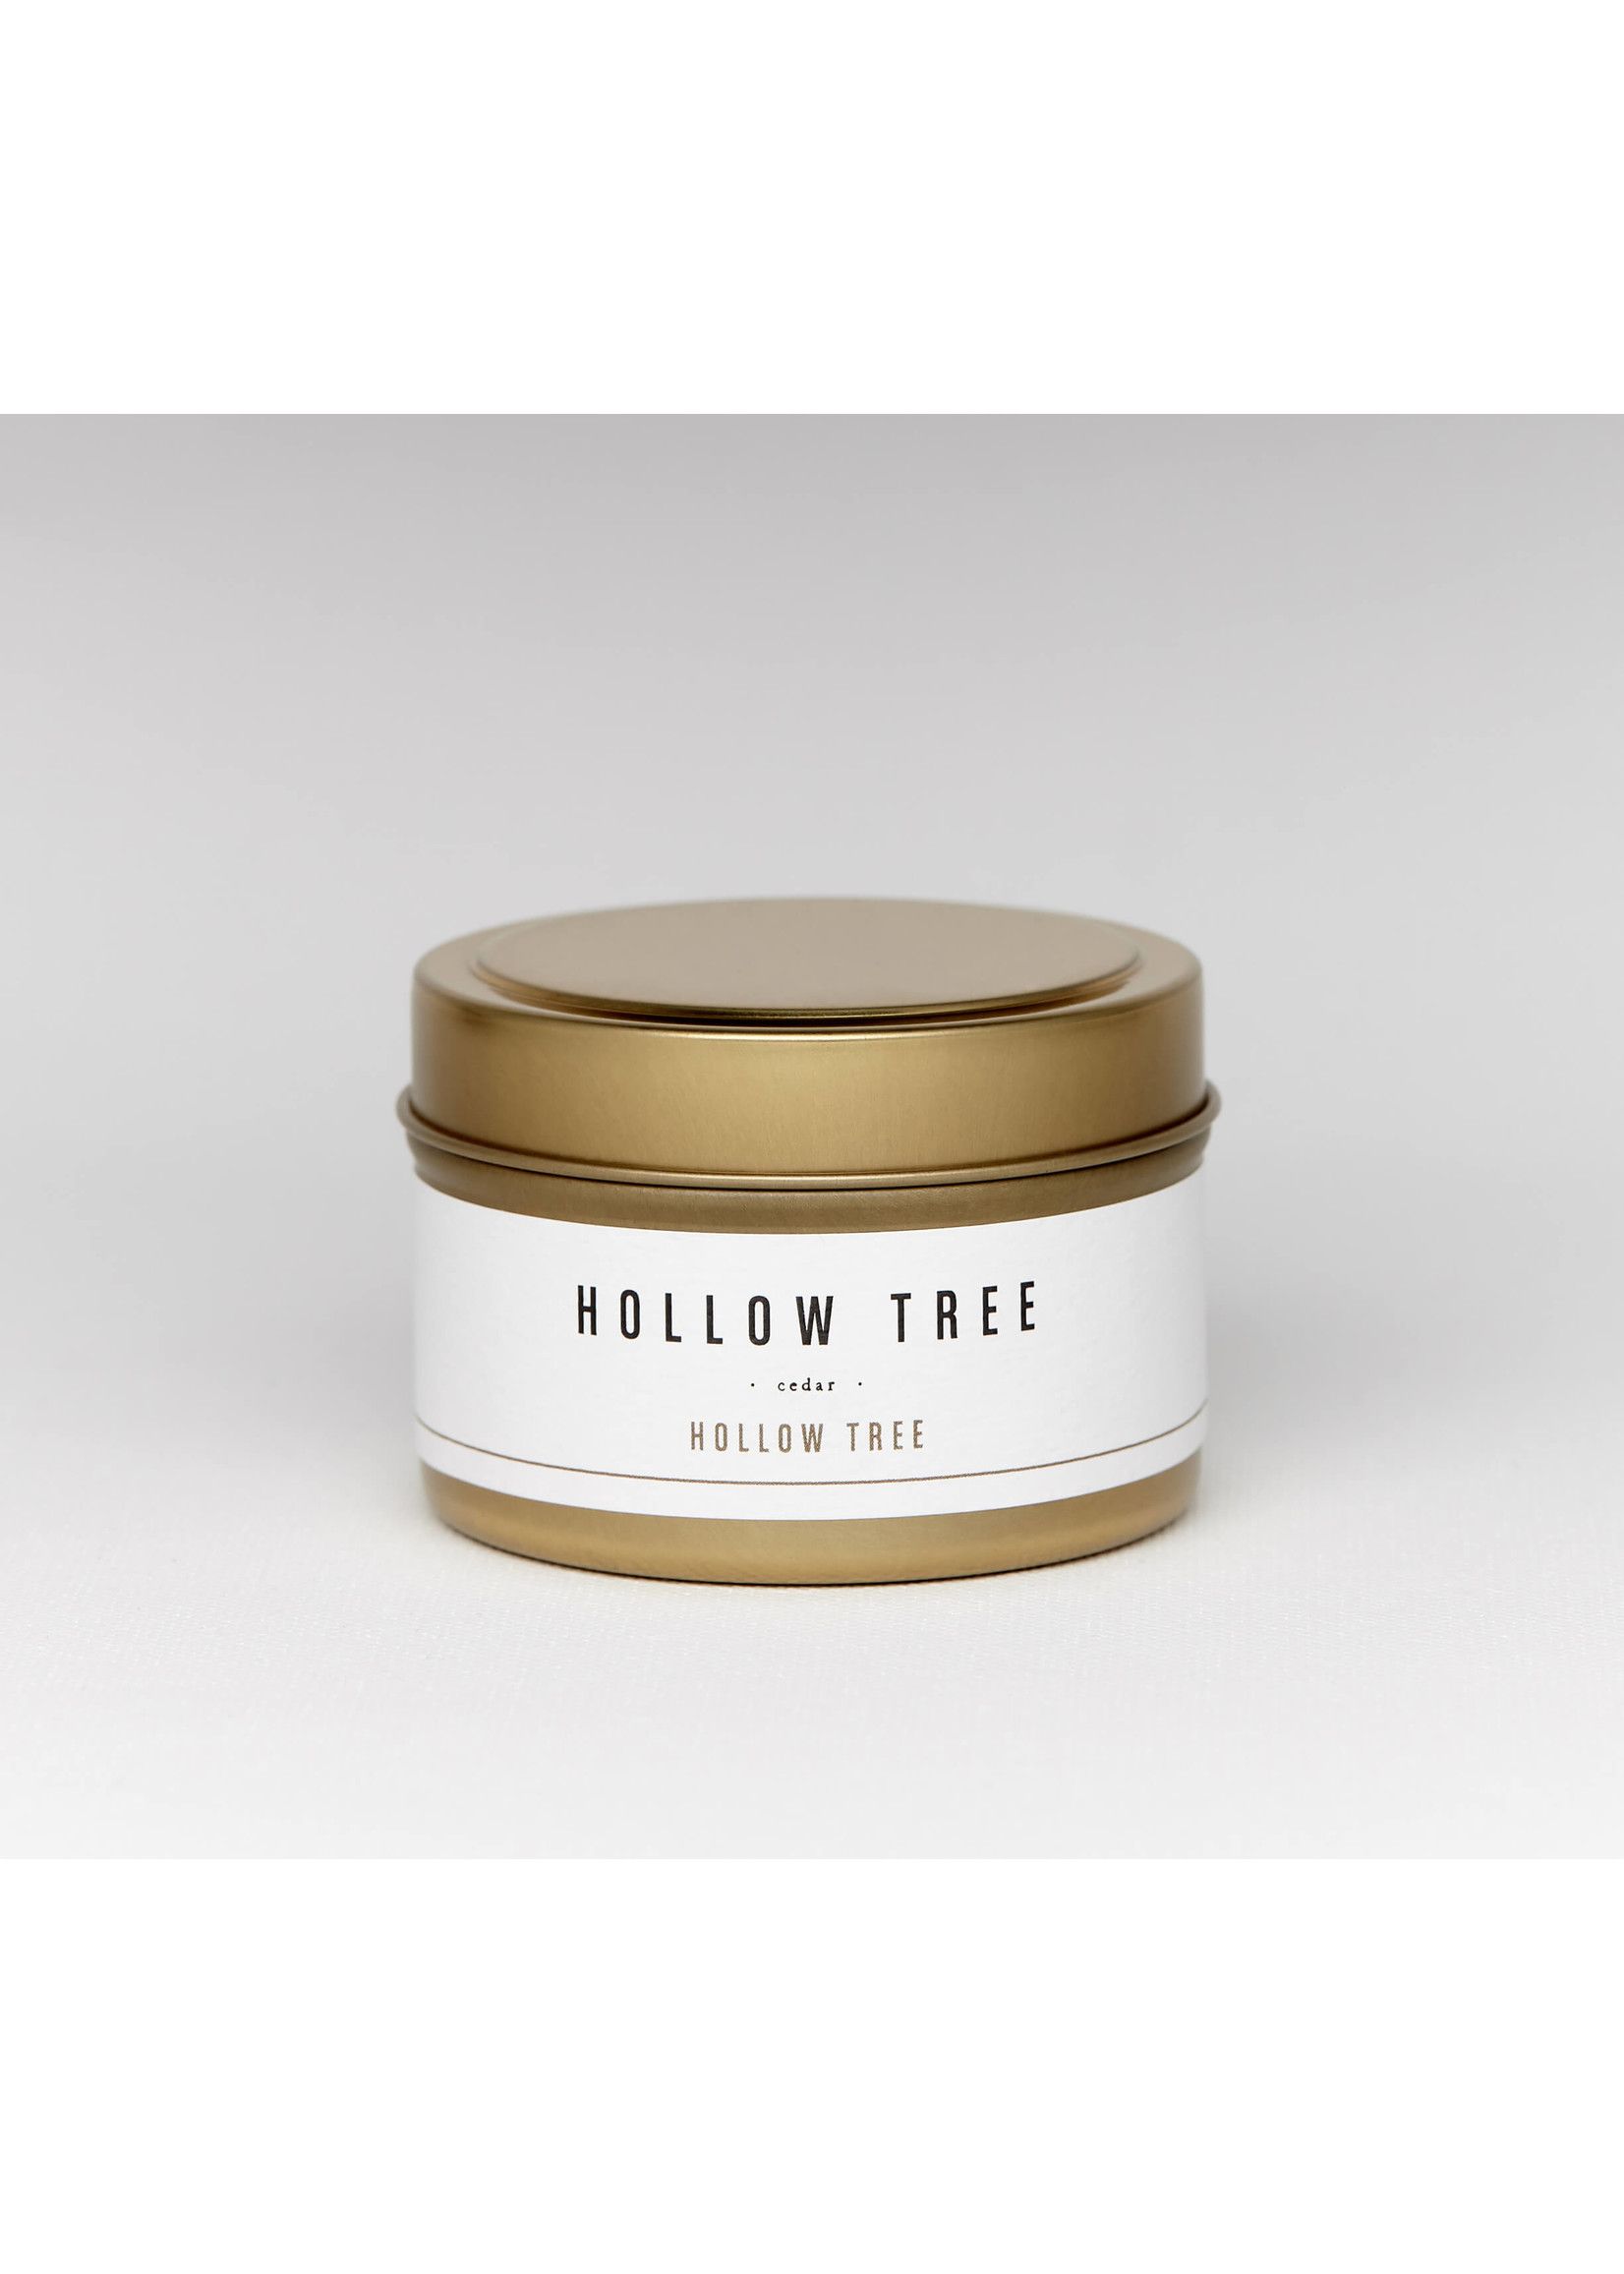 Hollow Tree Hollow Tree Travel Candle